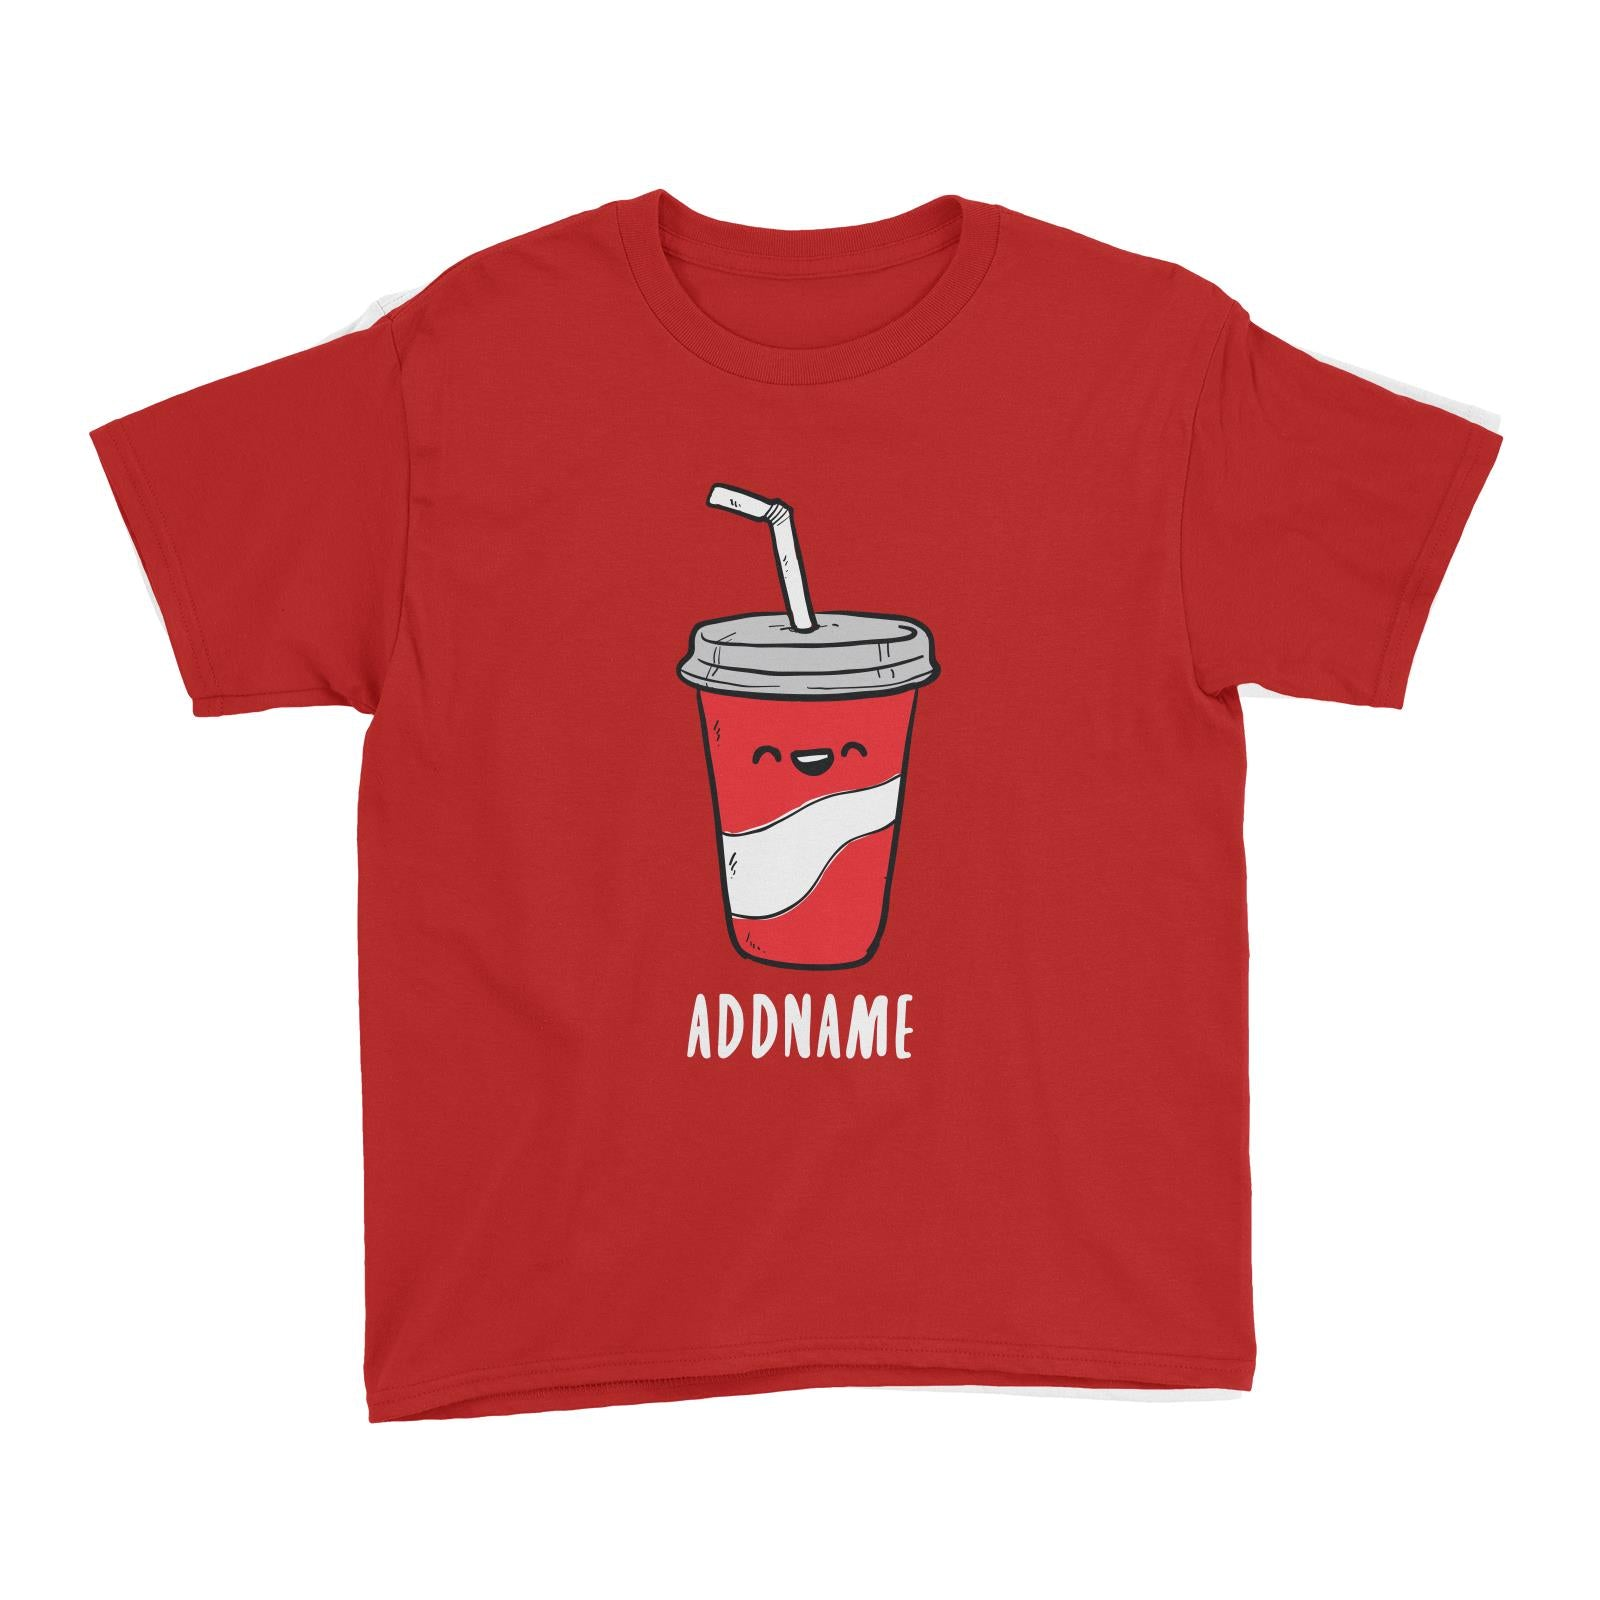 Fast Food Coke Addname Kid's T-Shirt  Comic Cartoon Matching Family Personalizable Designs